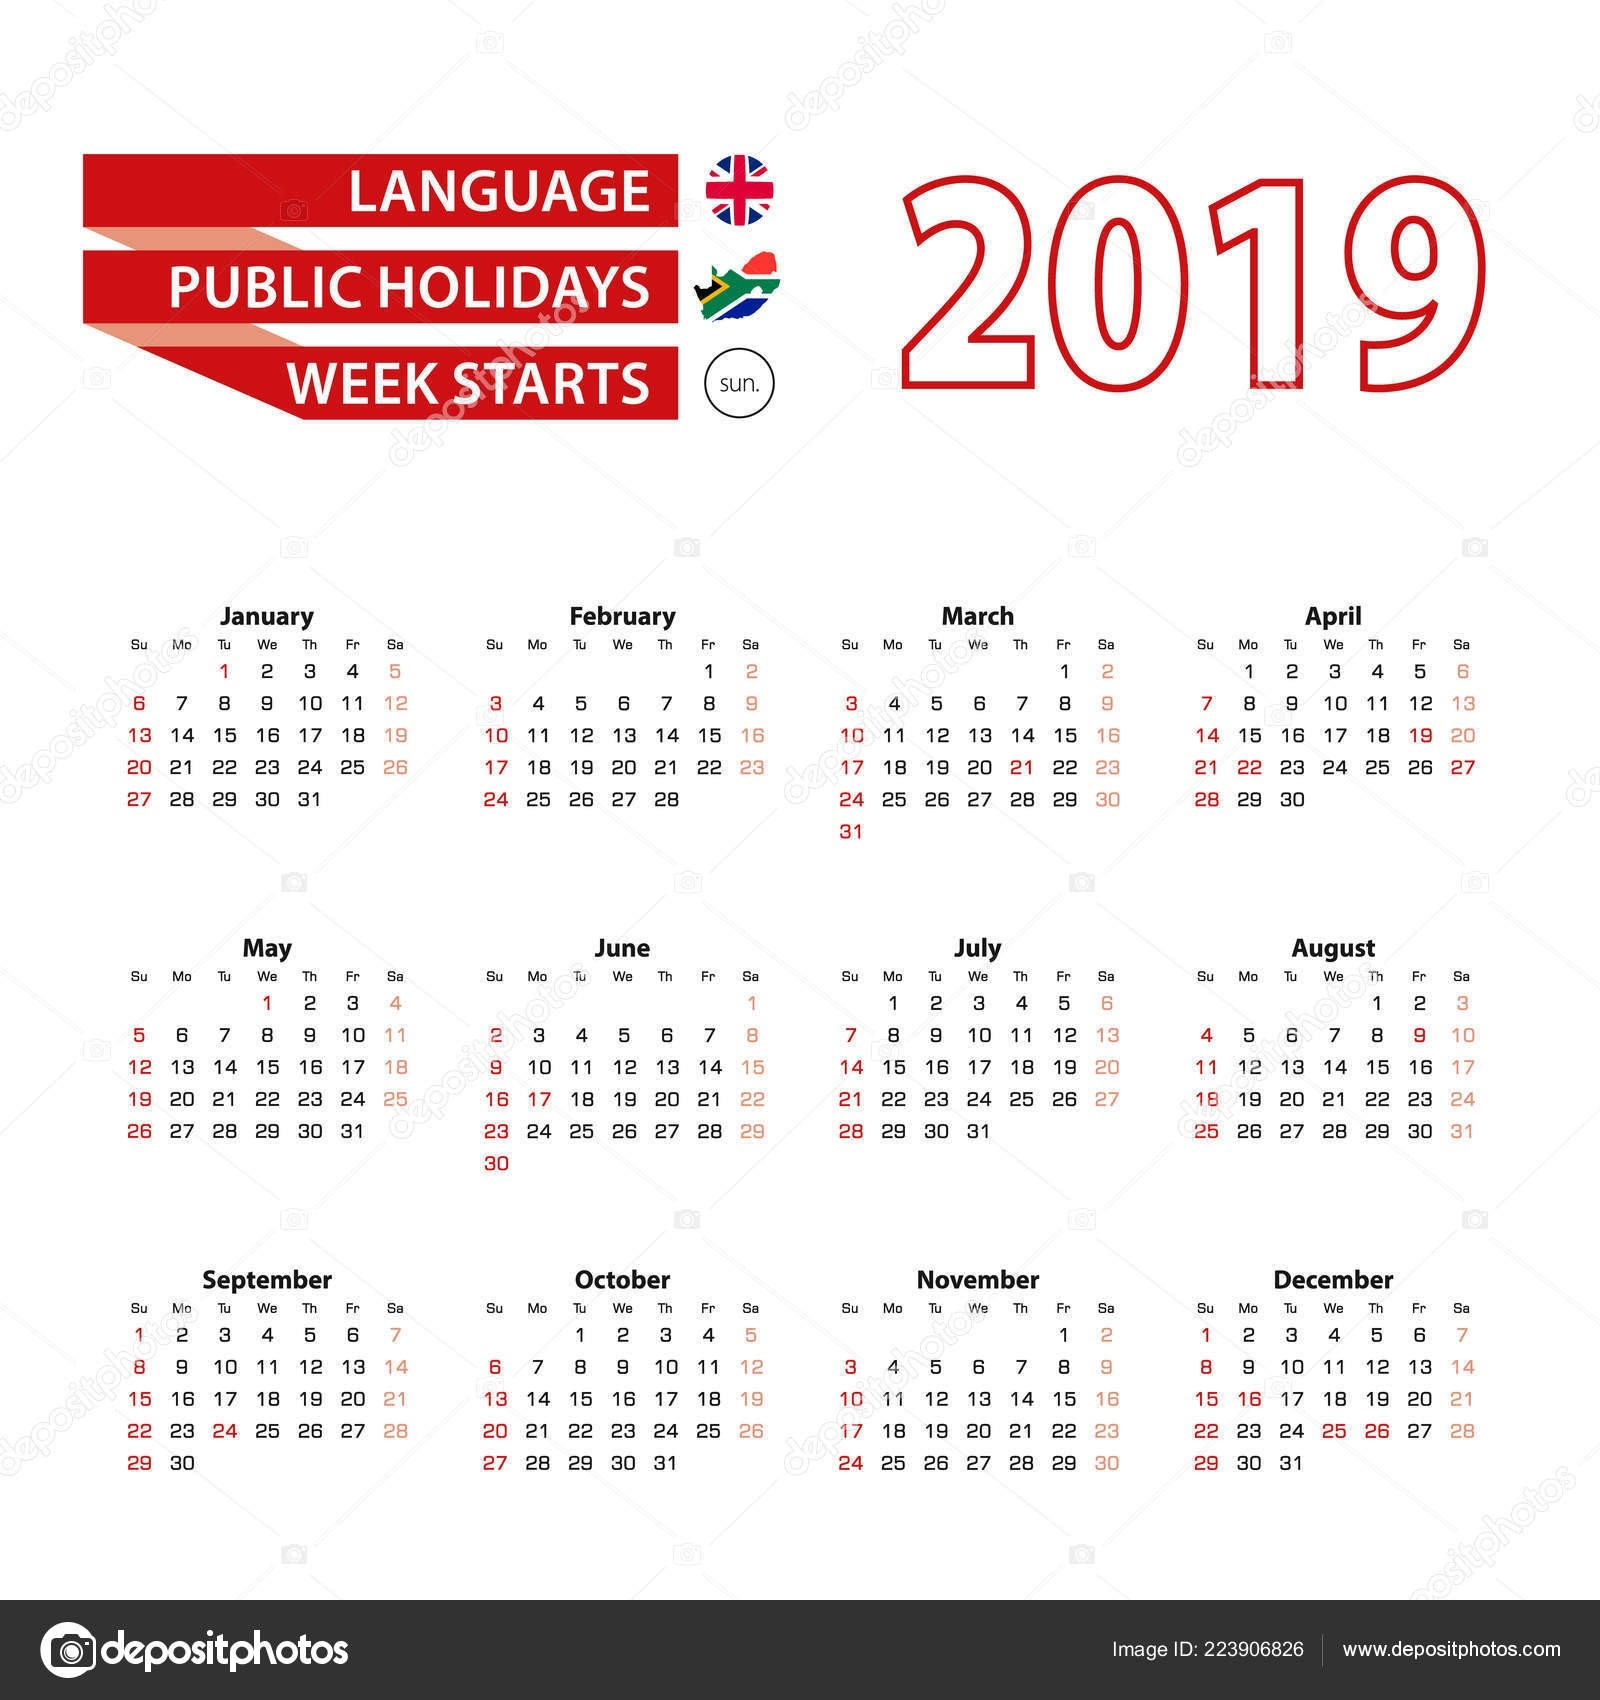 Calendar 2019 English Language Public Holidays Country South-Public Holidays South Africa